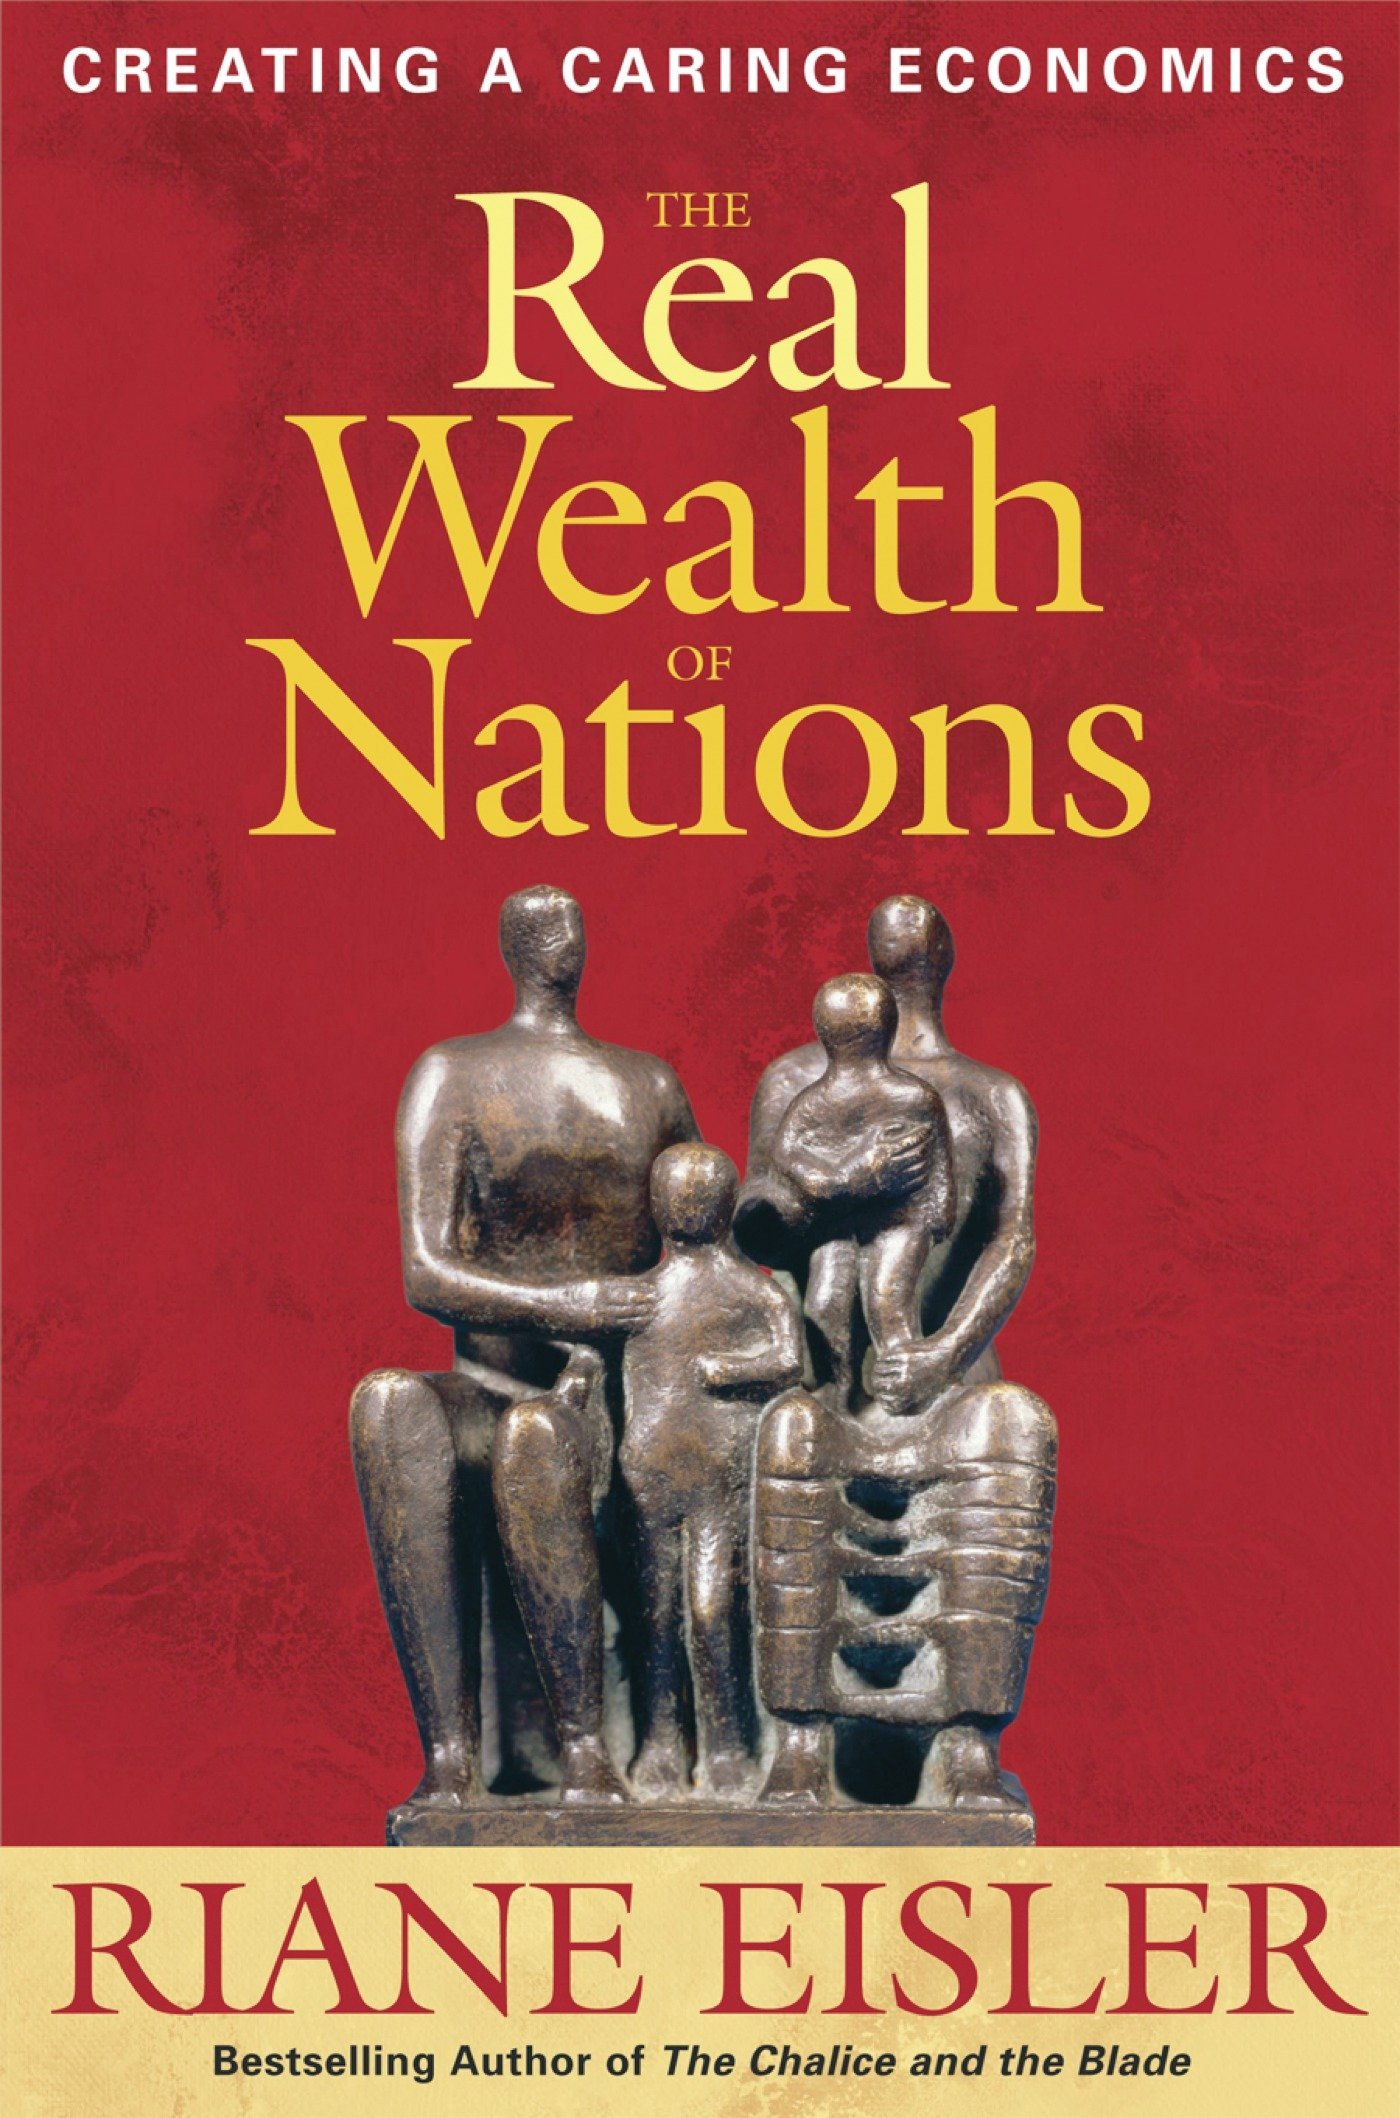 The Real Wealth of Nations: Creating A Caring Economics: Riane Eisler:  9781576756294: Amazon.com: Books